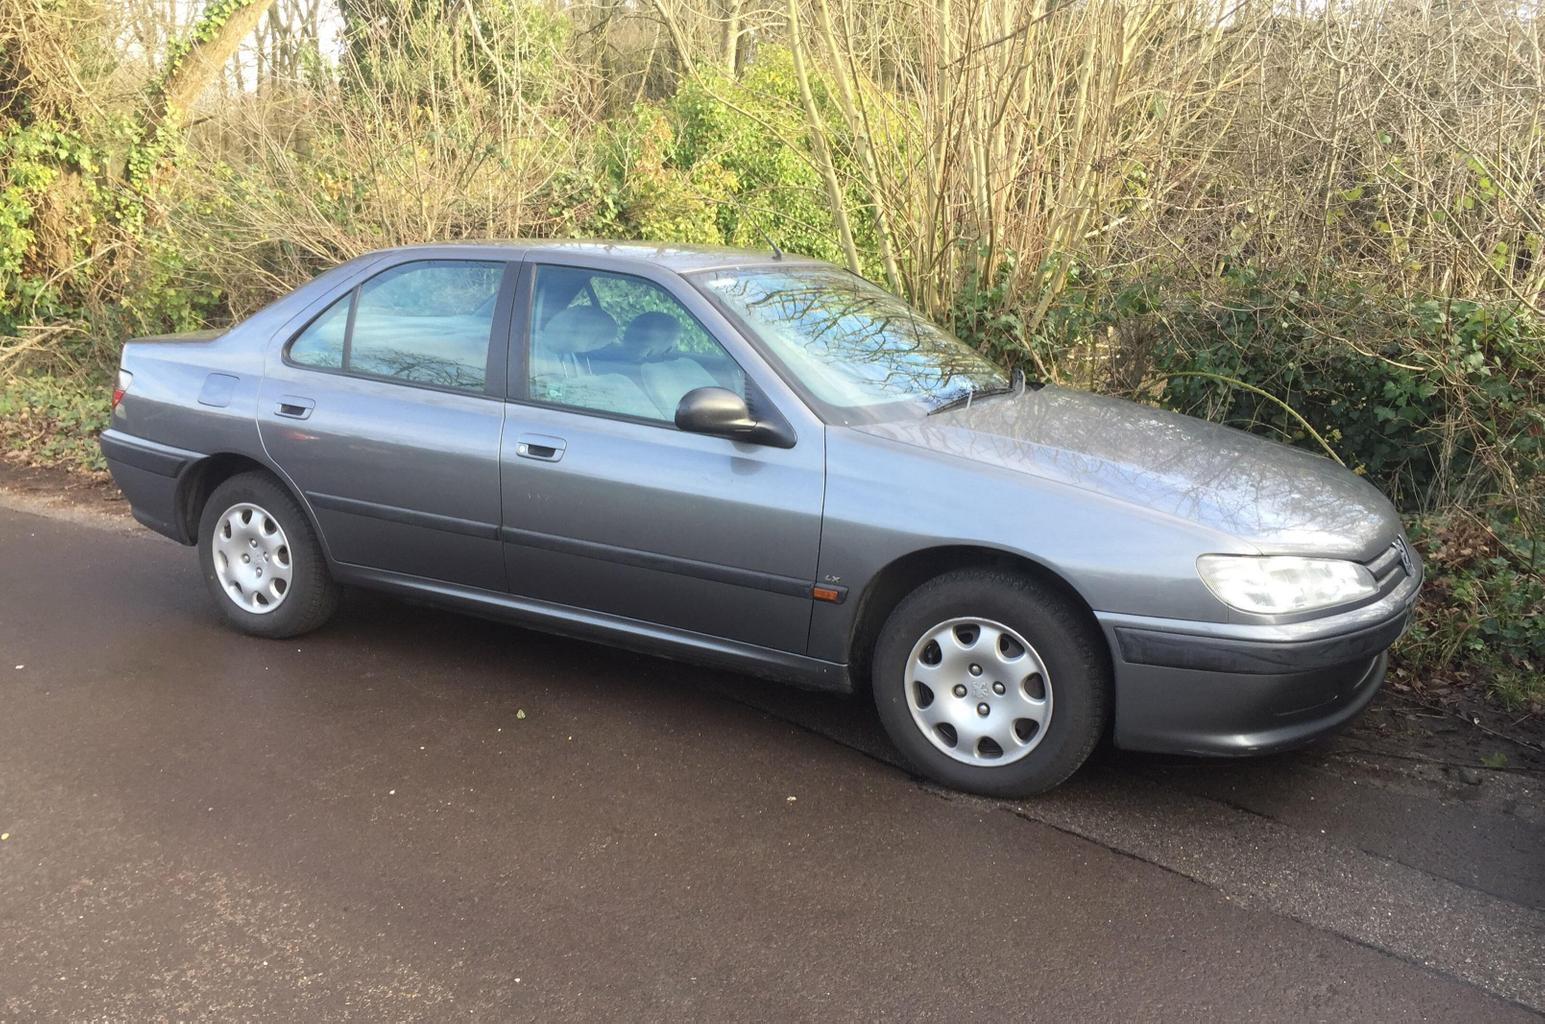 Used Peugeot 406 long-term review